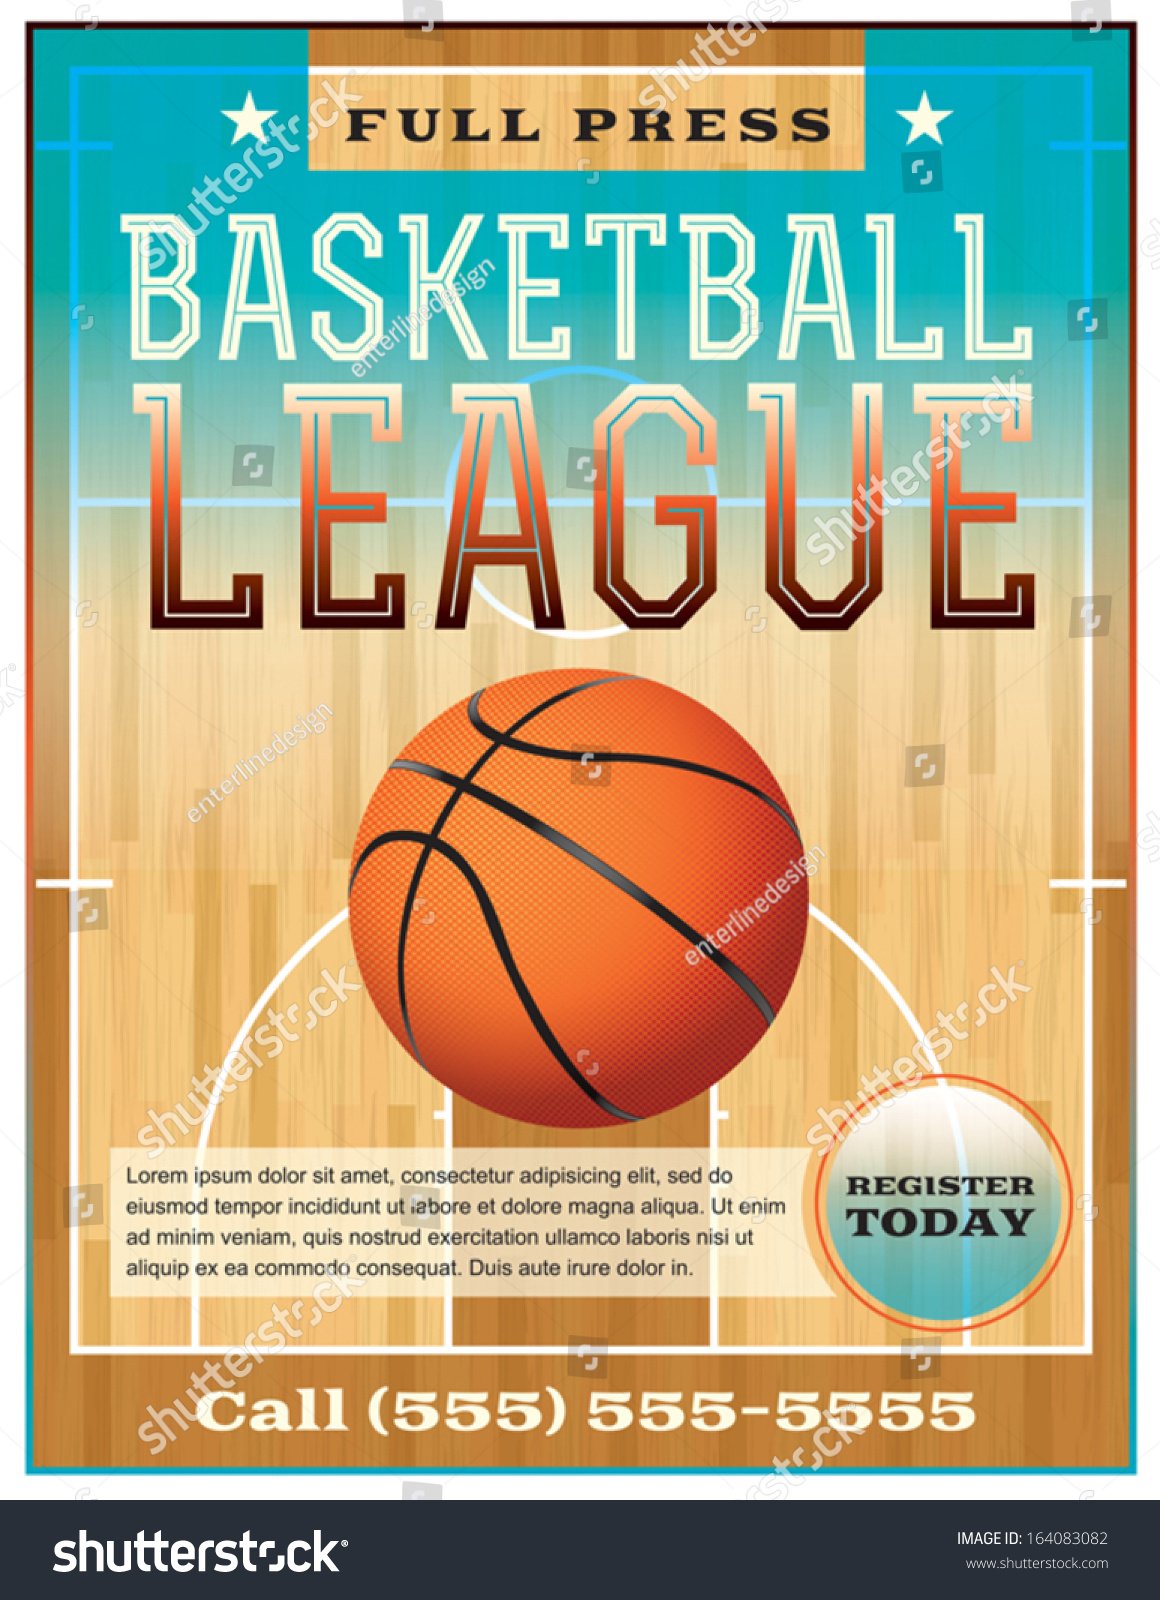 Basketball League Flyer Poster Perfect Basketball Stock. Startup Business Plan Template Excel. Thanksgiving Potluck Invitation. Graduation Jewelry Gifts For Her. Cleaning Service Advertisement. Avery Shipping Labels Template. Editable Wedding Invitation Templates. Halloween Flyer Template. Restaurant Comment Card Template